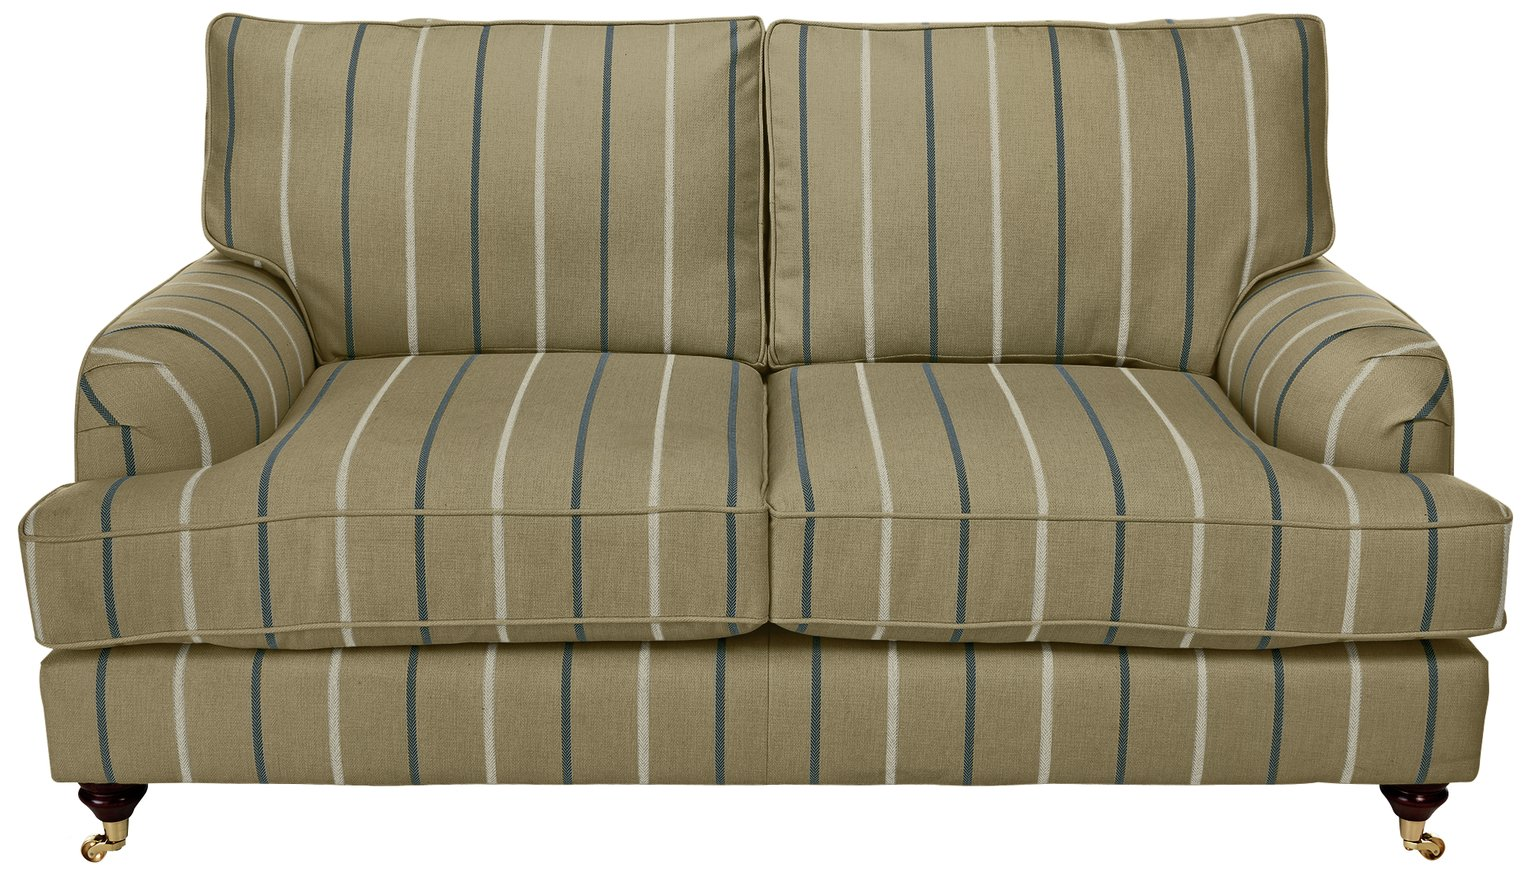 Image of Heart of House Abberton 2 Seater Sofa - Mink Stripe